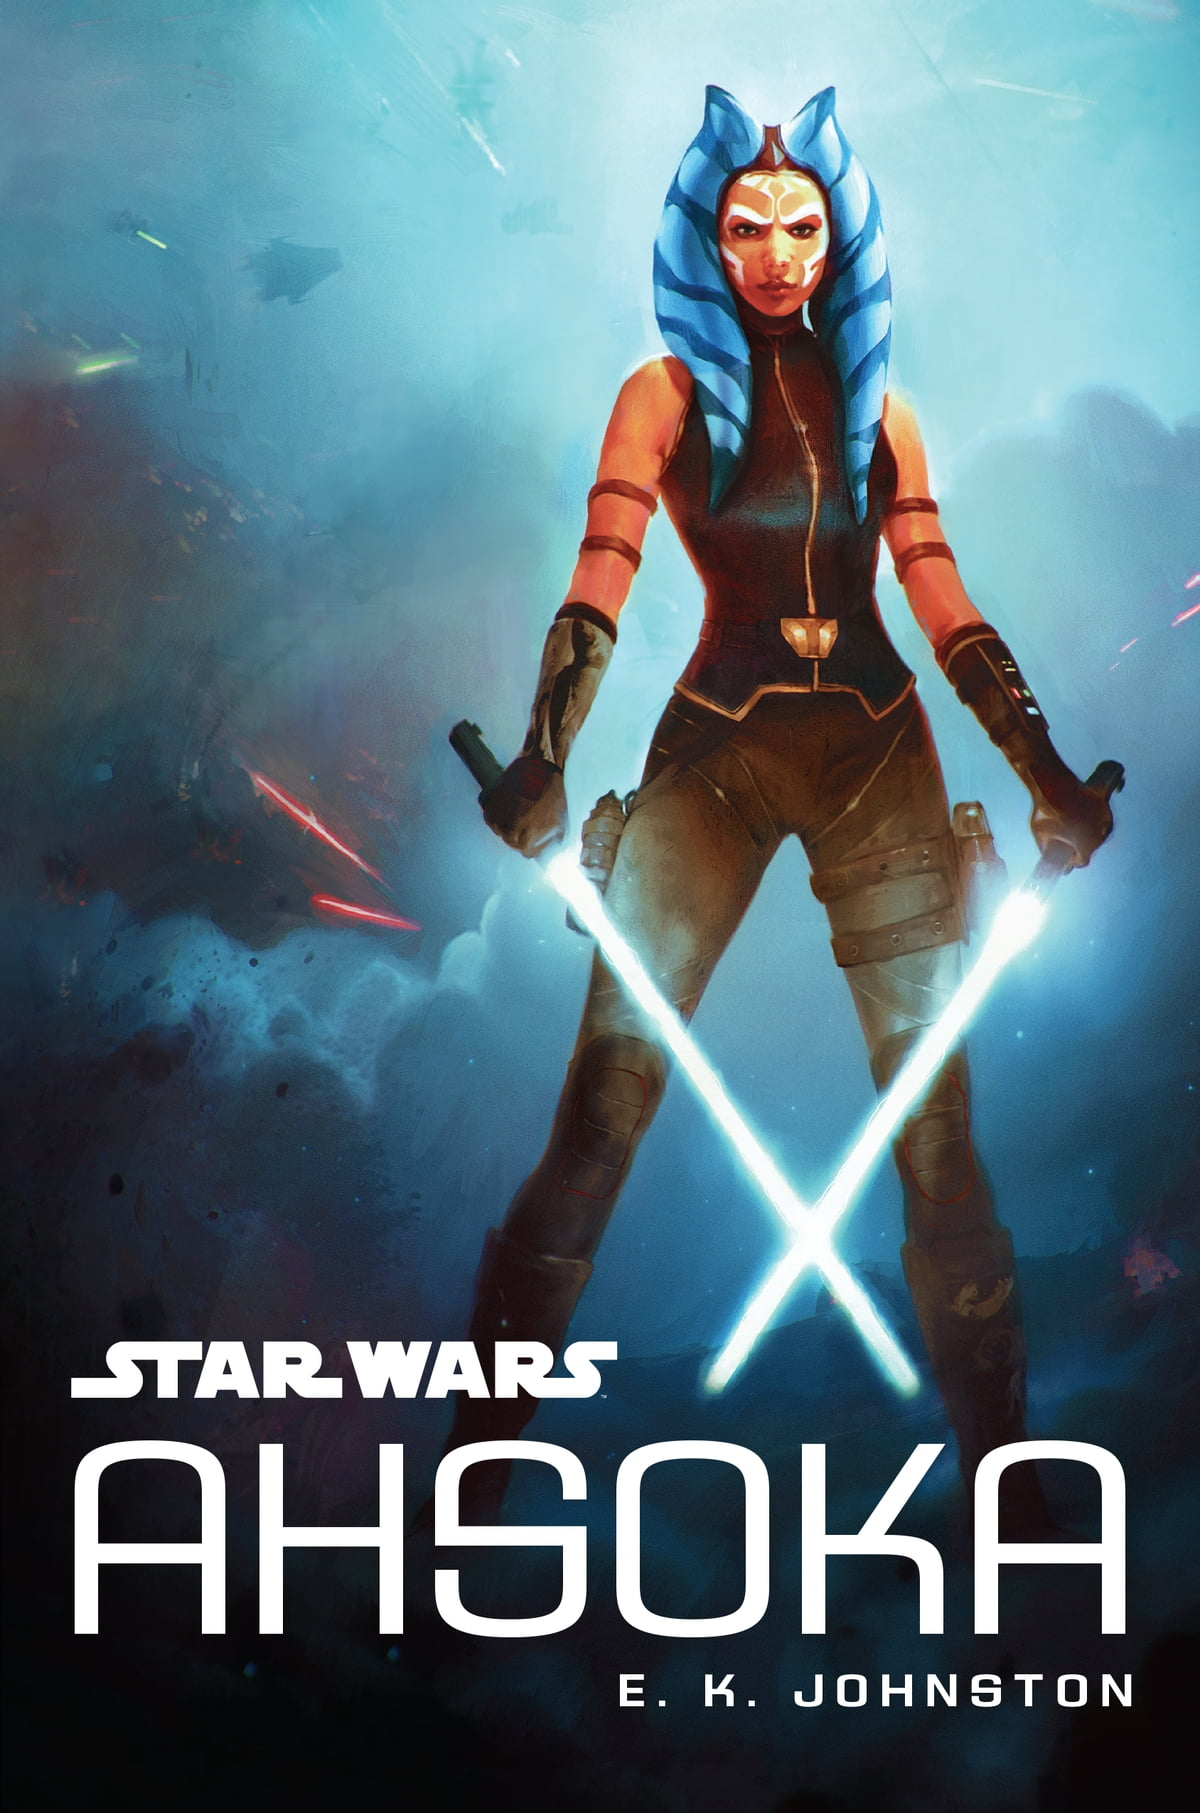 Libros Star Wars Pdf Star Wars Ahsoka Ebook By E K Johnston Rakuten Kobo